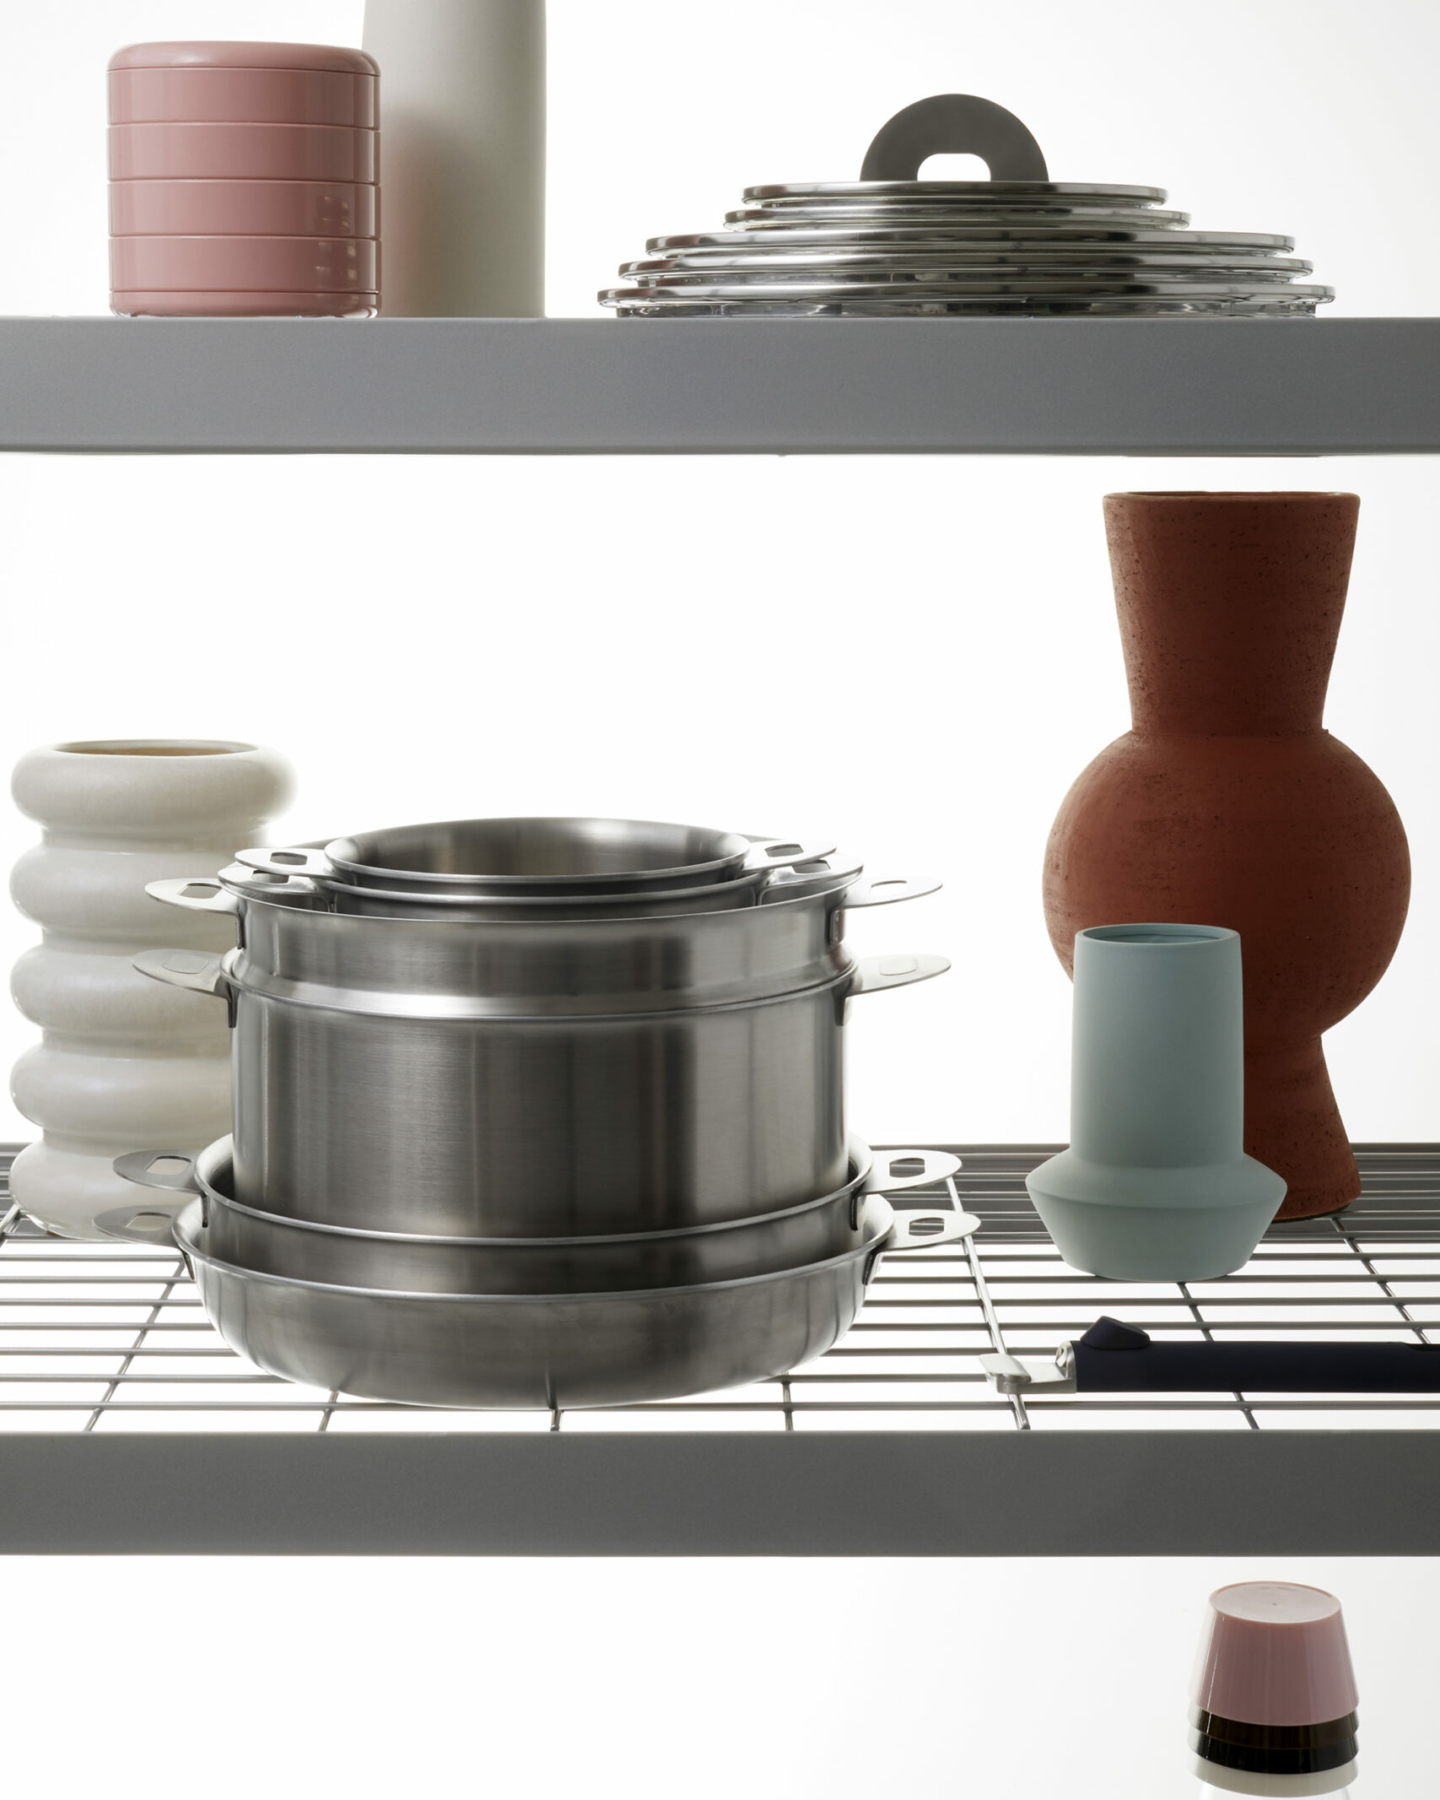 ENSEMBL Stackware cookware and lids